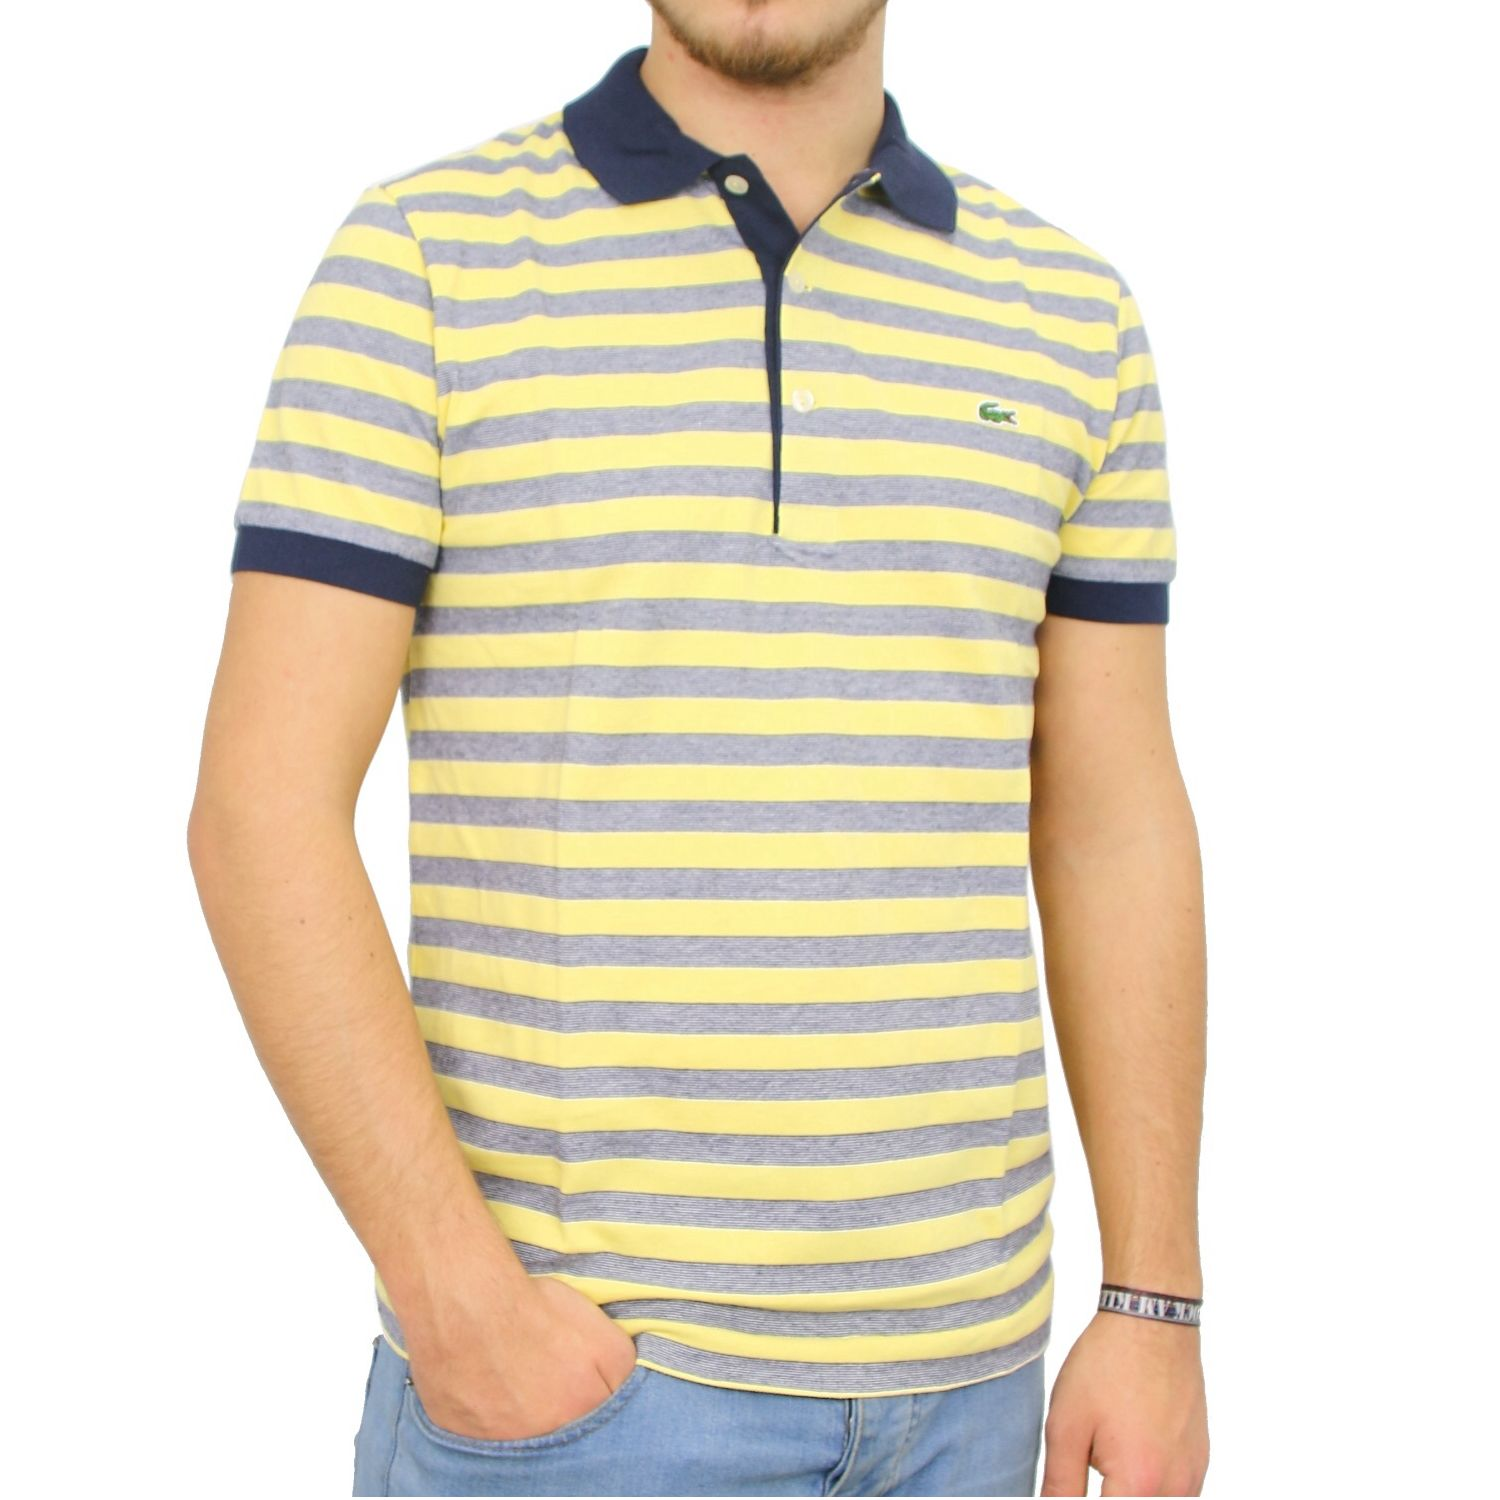 lacoste polo shirt t shirt tee shirt striped men various colours ph8160 ebay. Black Bedroom Furniture Sets. Home Design Ideas